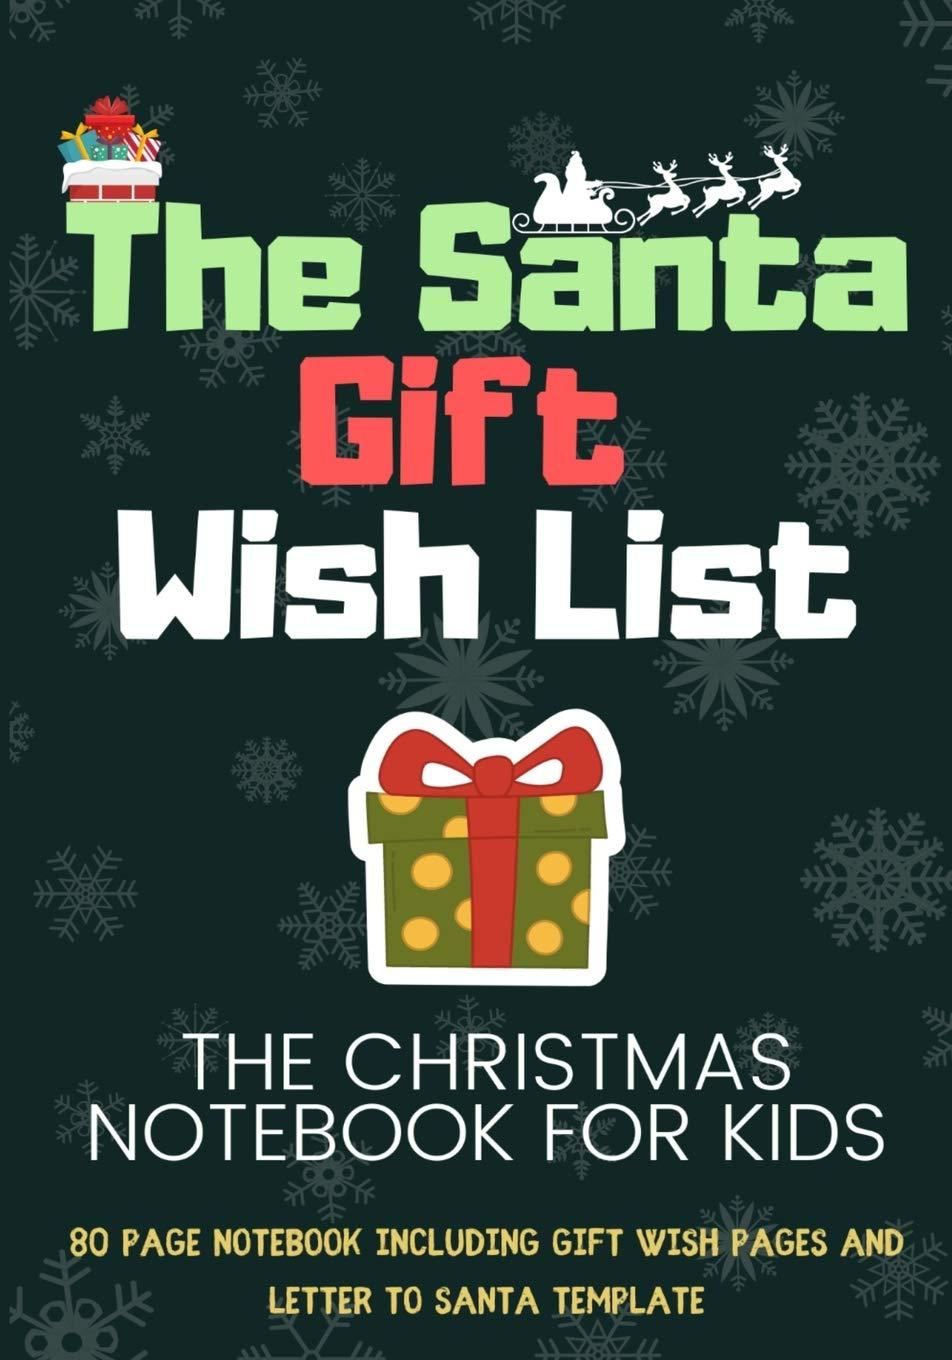 The Santa Wish List A Combination Notebook With Templates For Kids To Record Their Gifts Plus Letter Template To Write To Santa Designs Modern Magic 9781922515322 Books